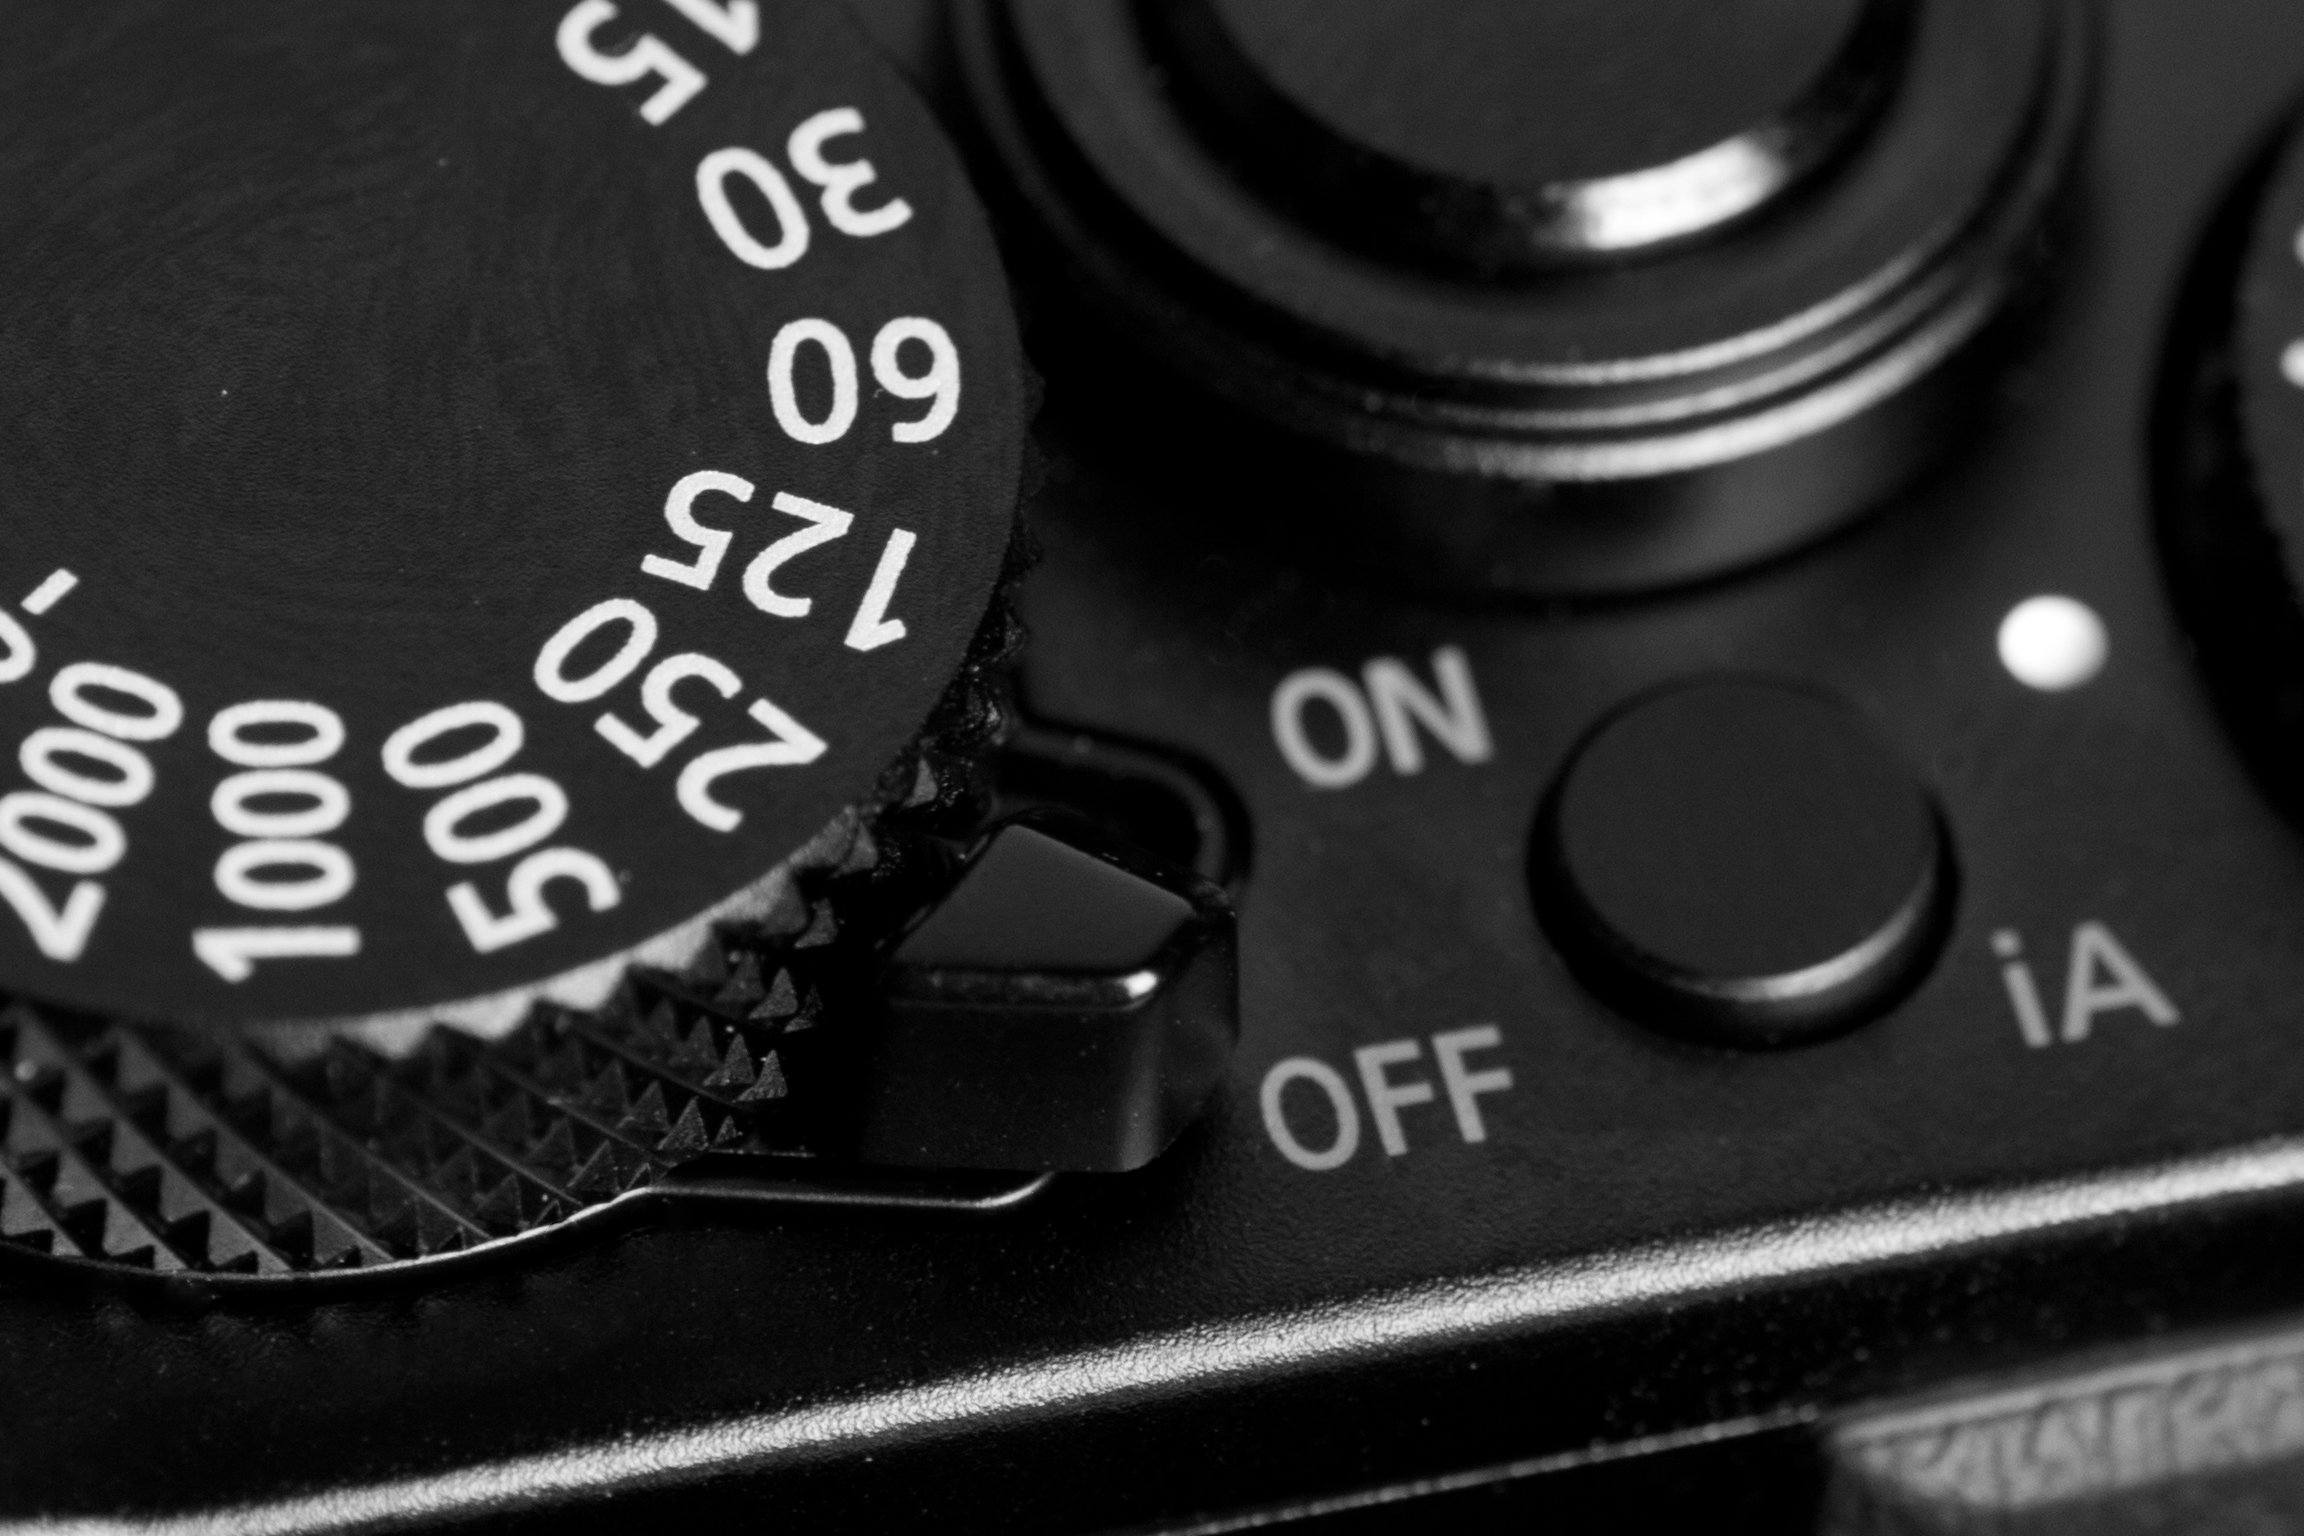 A photograph of the Panasonic Lumix LX100's power switch.